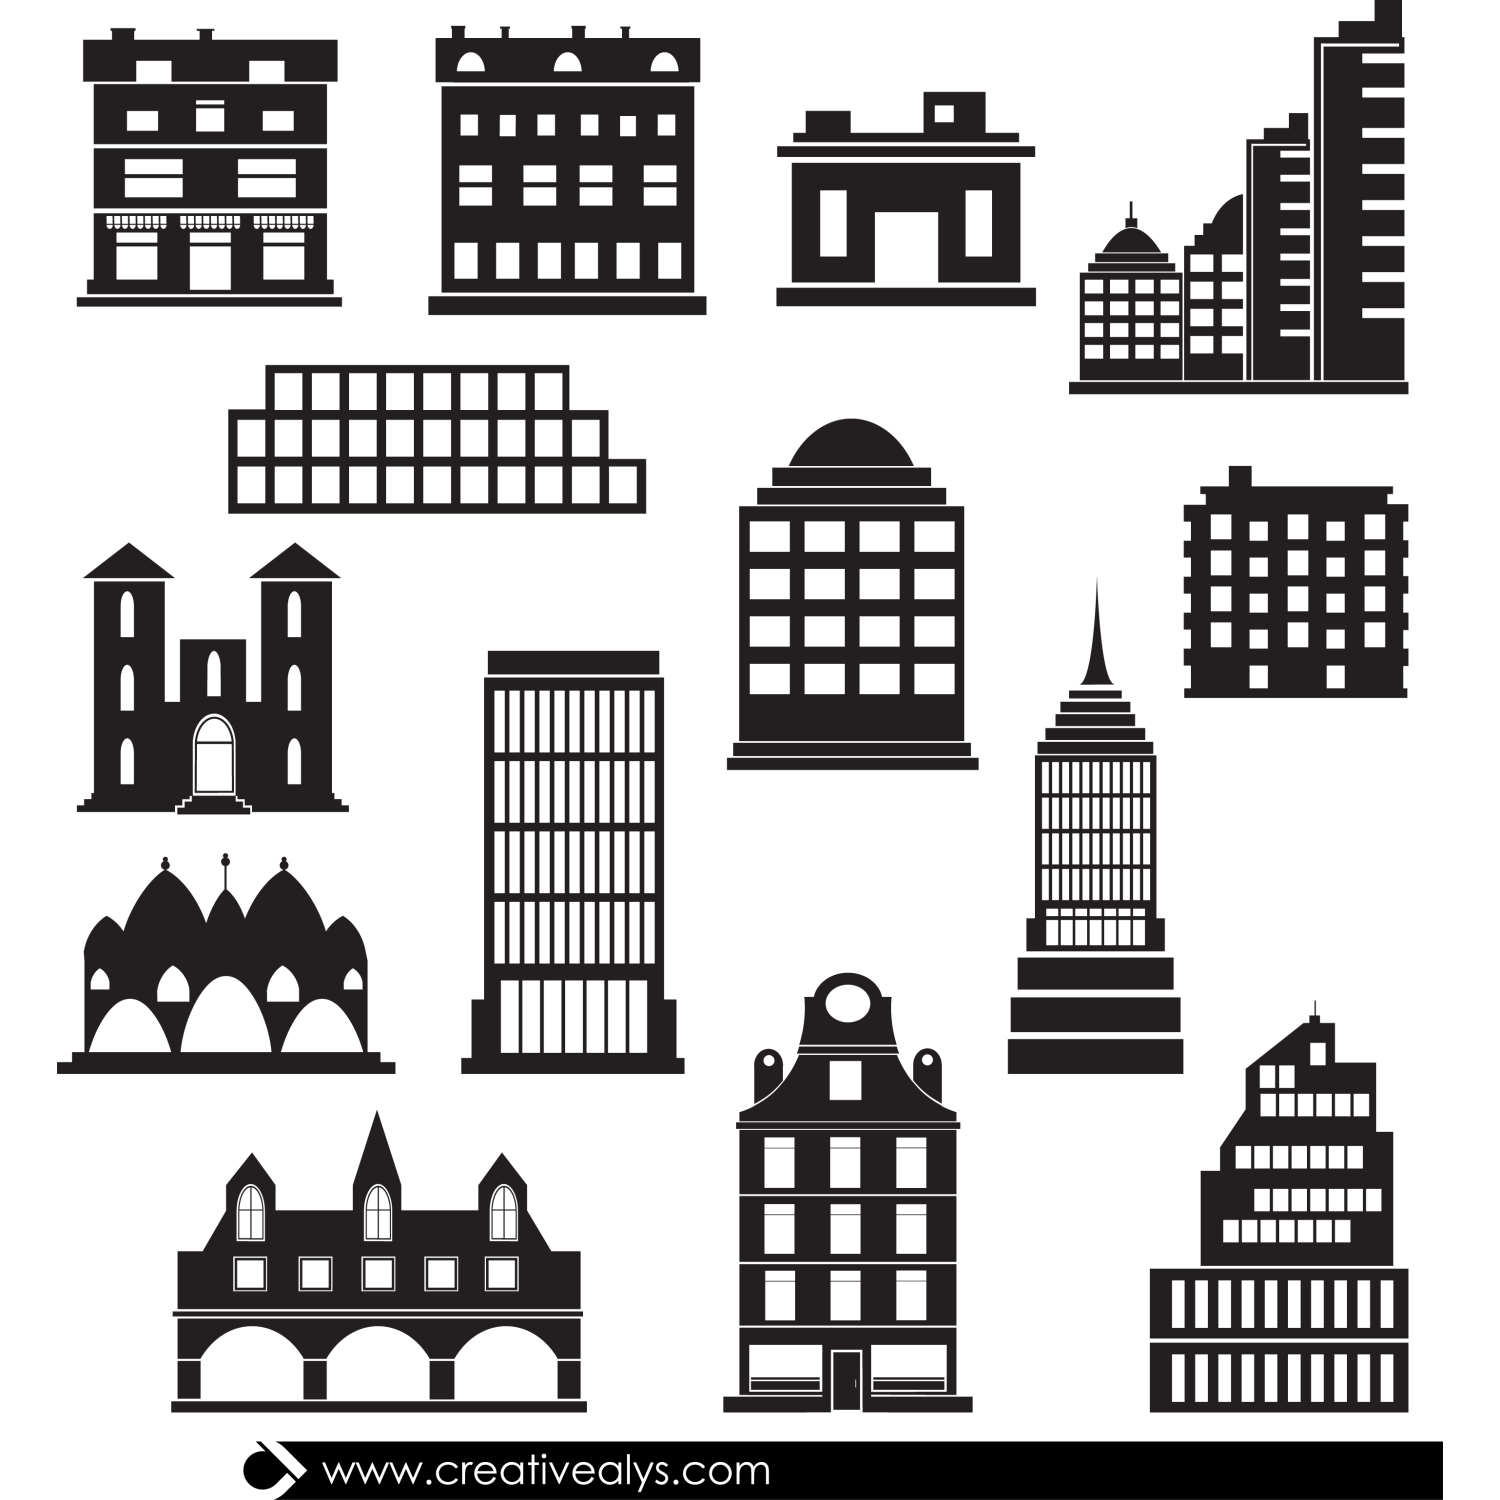 Here is a great silhouettes collection of 14 vector buildings available for free download. The vector buildings can be used as icons in web pages or apps and can be used in logo designs and other designs. Get a full collection of 50+ Vector Buildings. Download, enjoy and share having this great vector resource